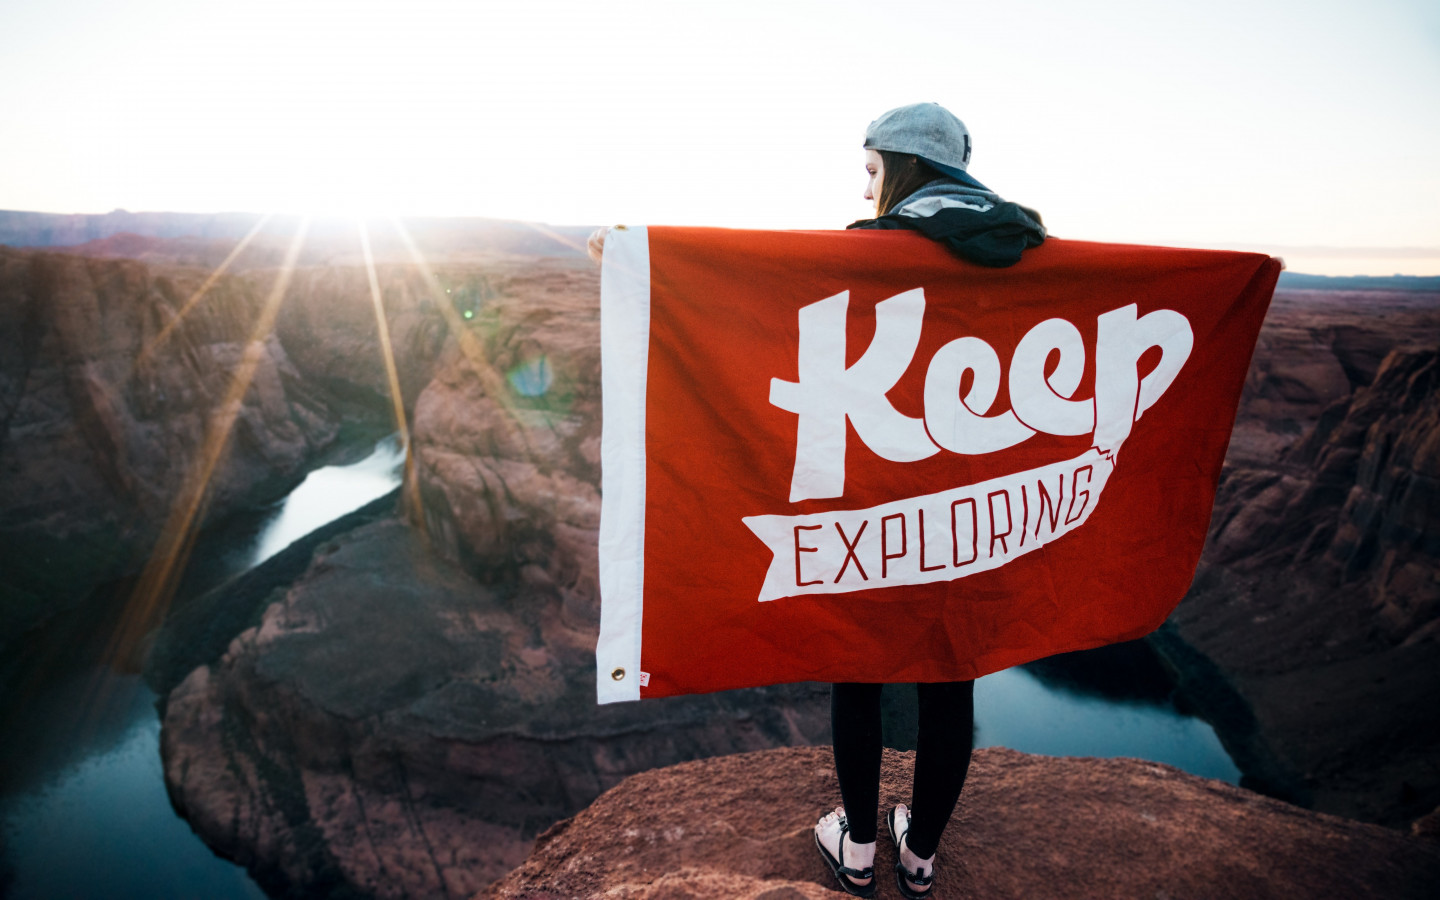 Keep Exploring wallpaper 1440x900